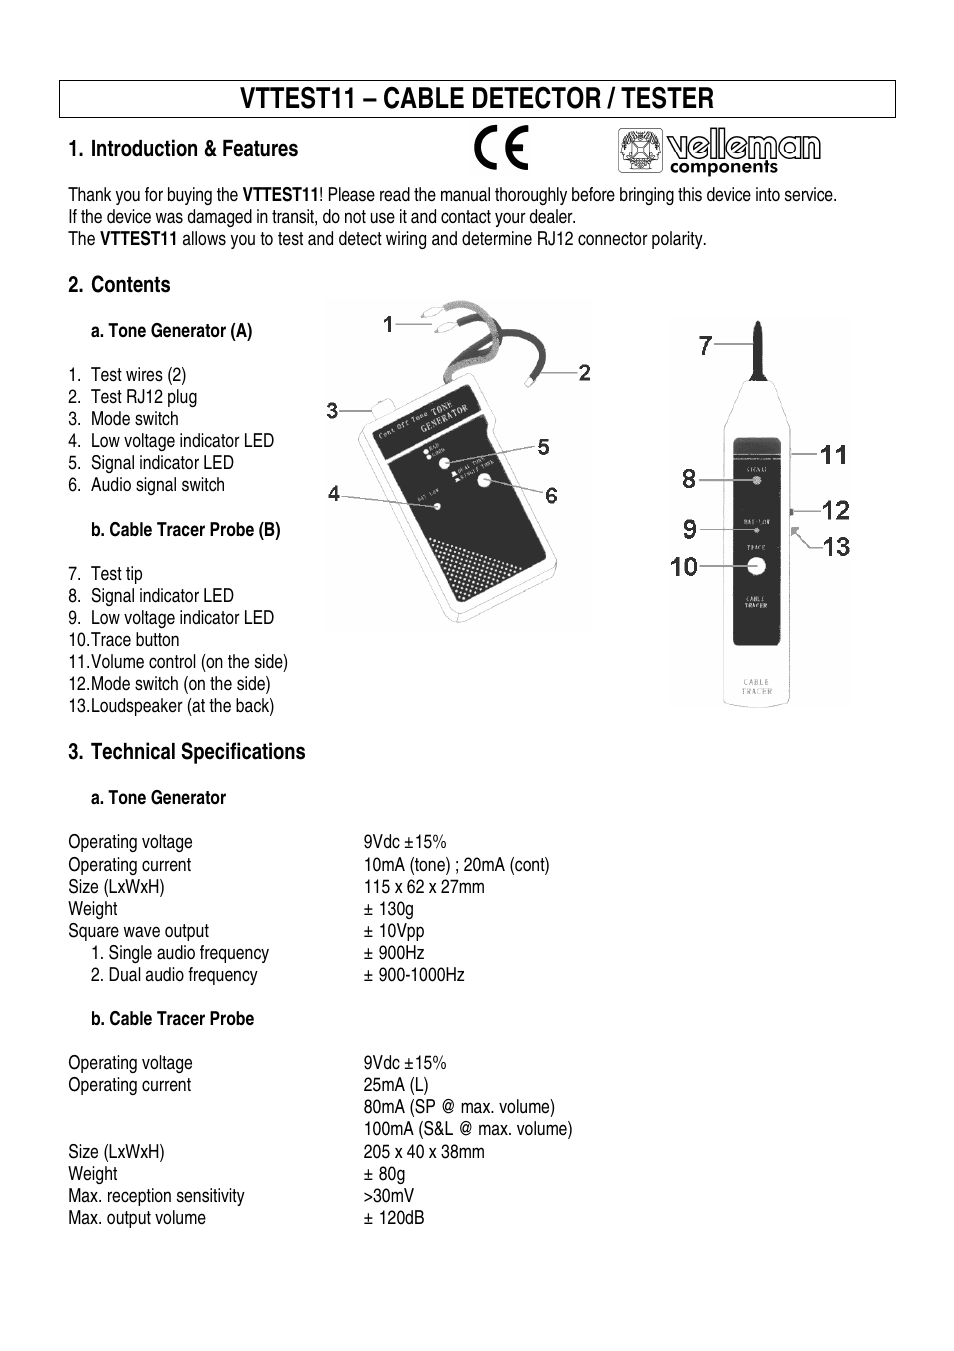 Velleman Vttest11 User Manual 11 Pages Wiring A Rj12 Plug